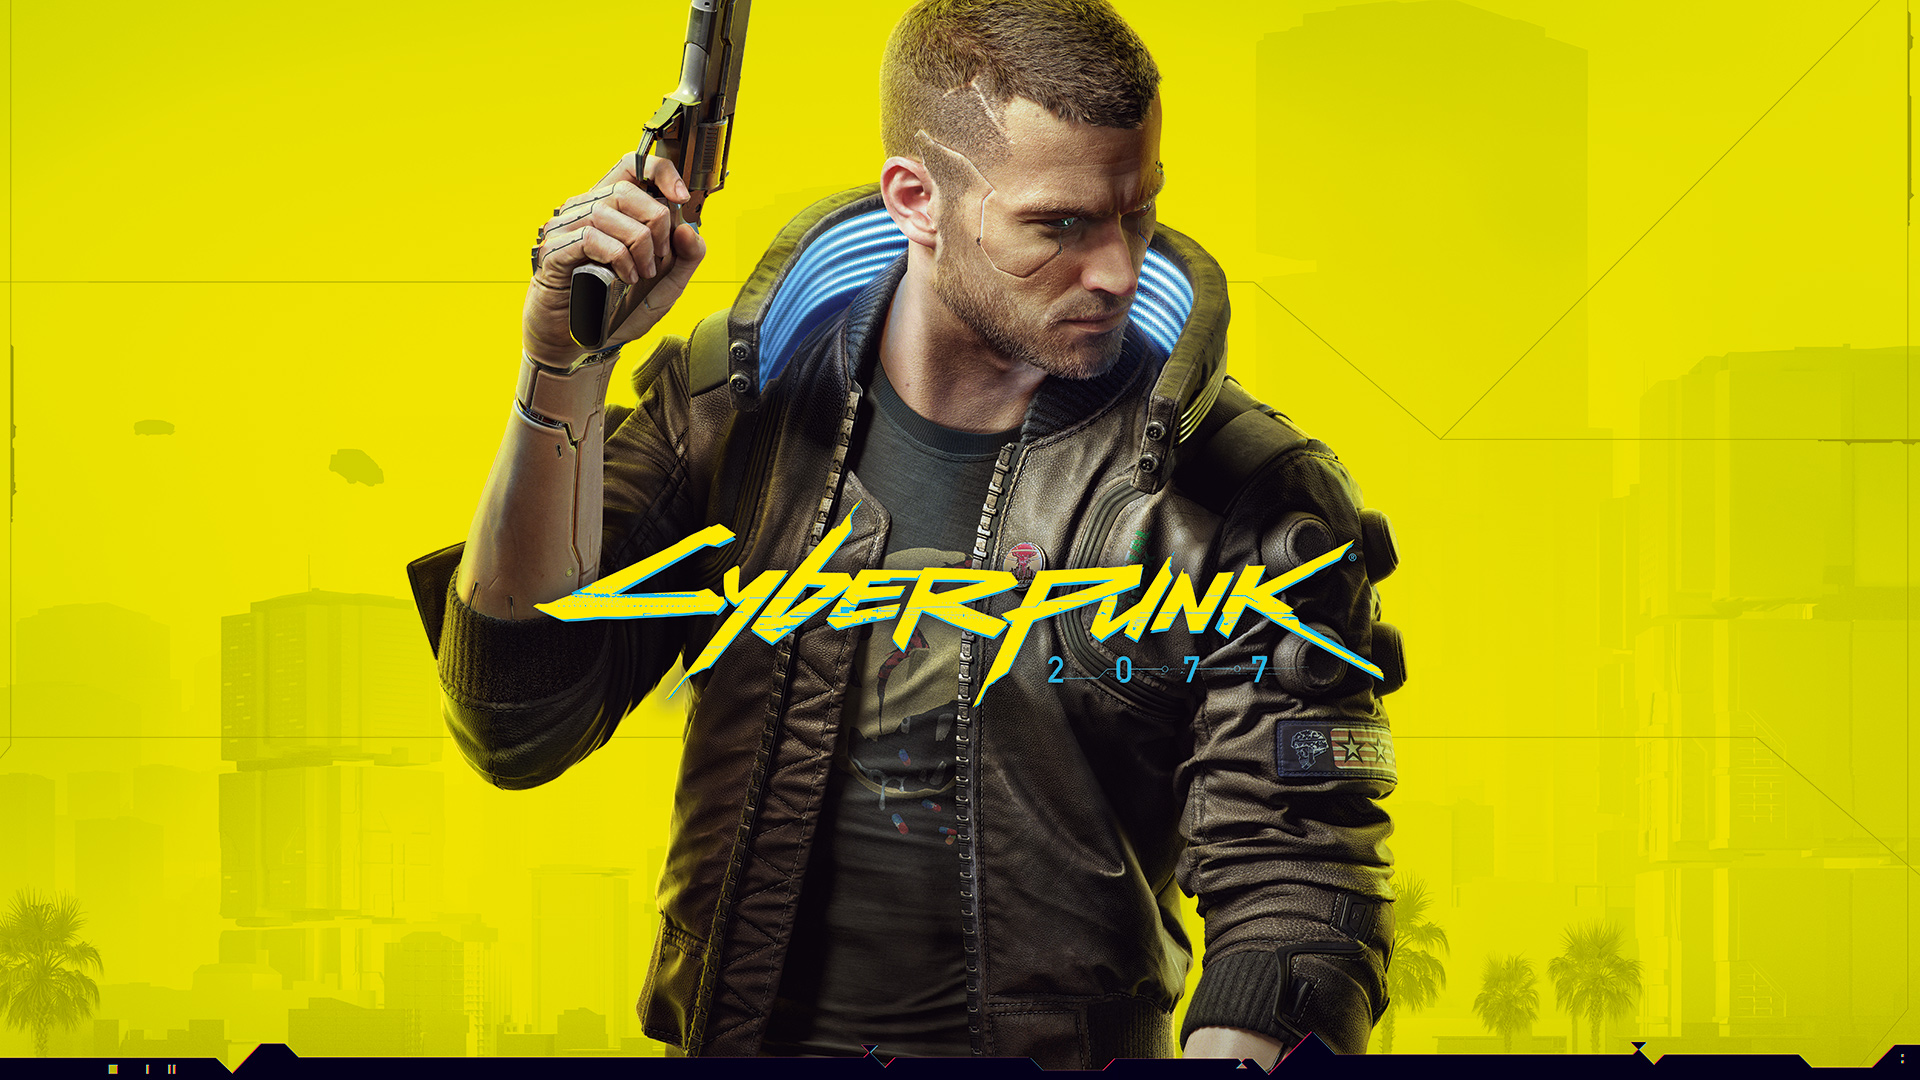 After Cyberpunk and Final Fantasy 7, THIS Game could be best PS4, Xbox One game of 2020